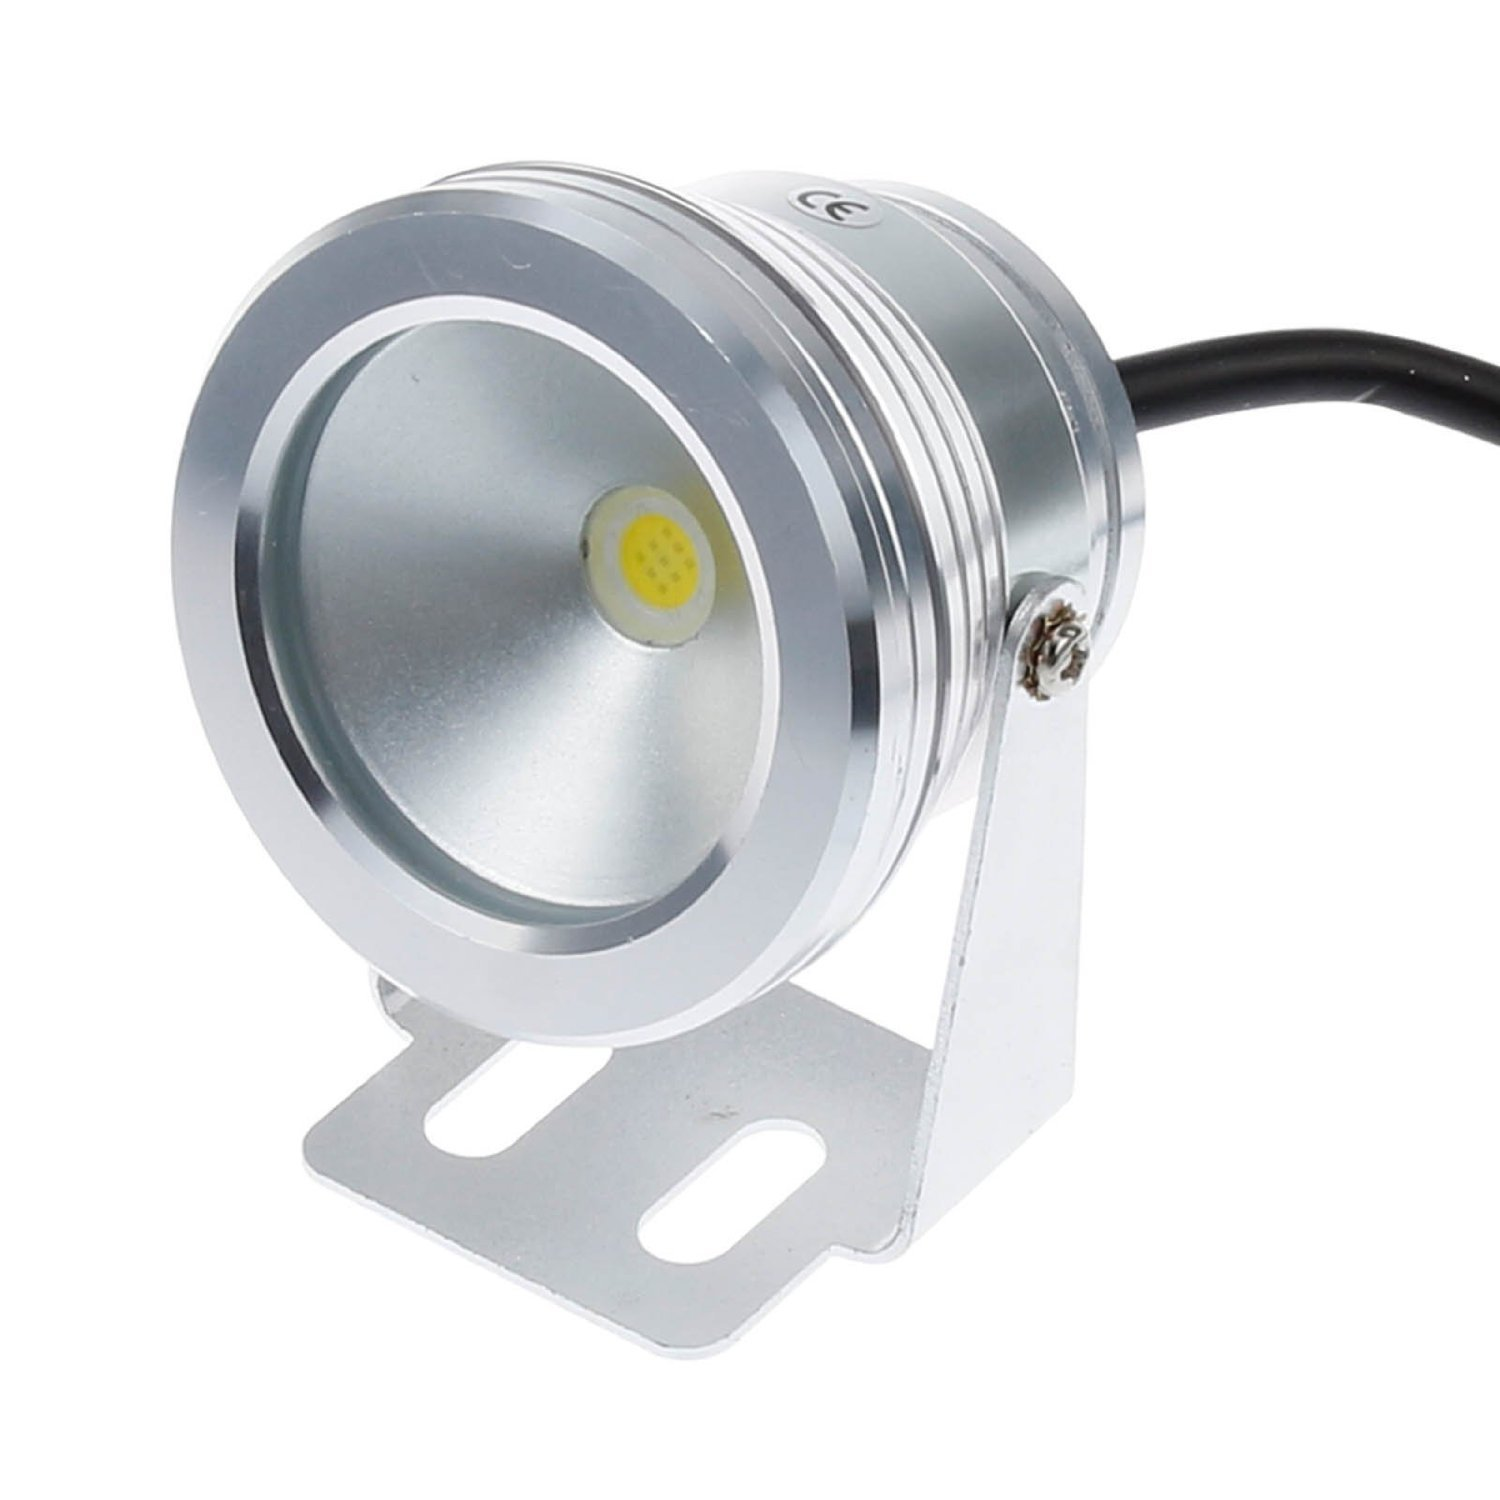 Pinjia 10w 12v Silver Waterproof IP67 LED Underwater Landscape Fountain Pond Pool Tank Lamp Warm White by PINJIA (Image #1)